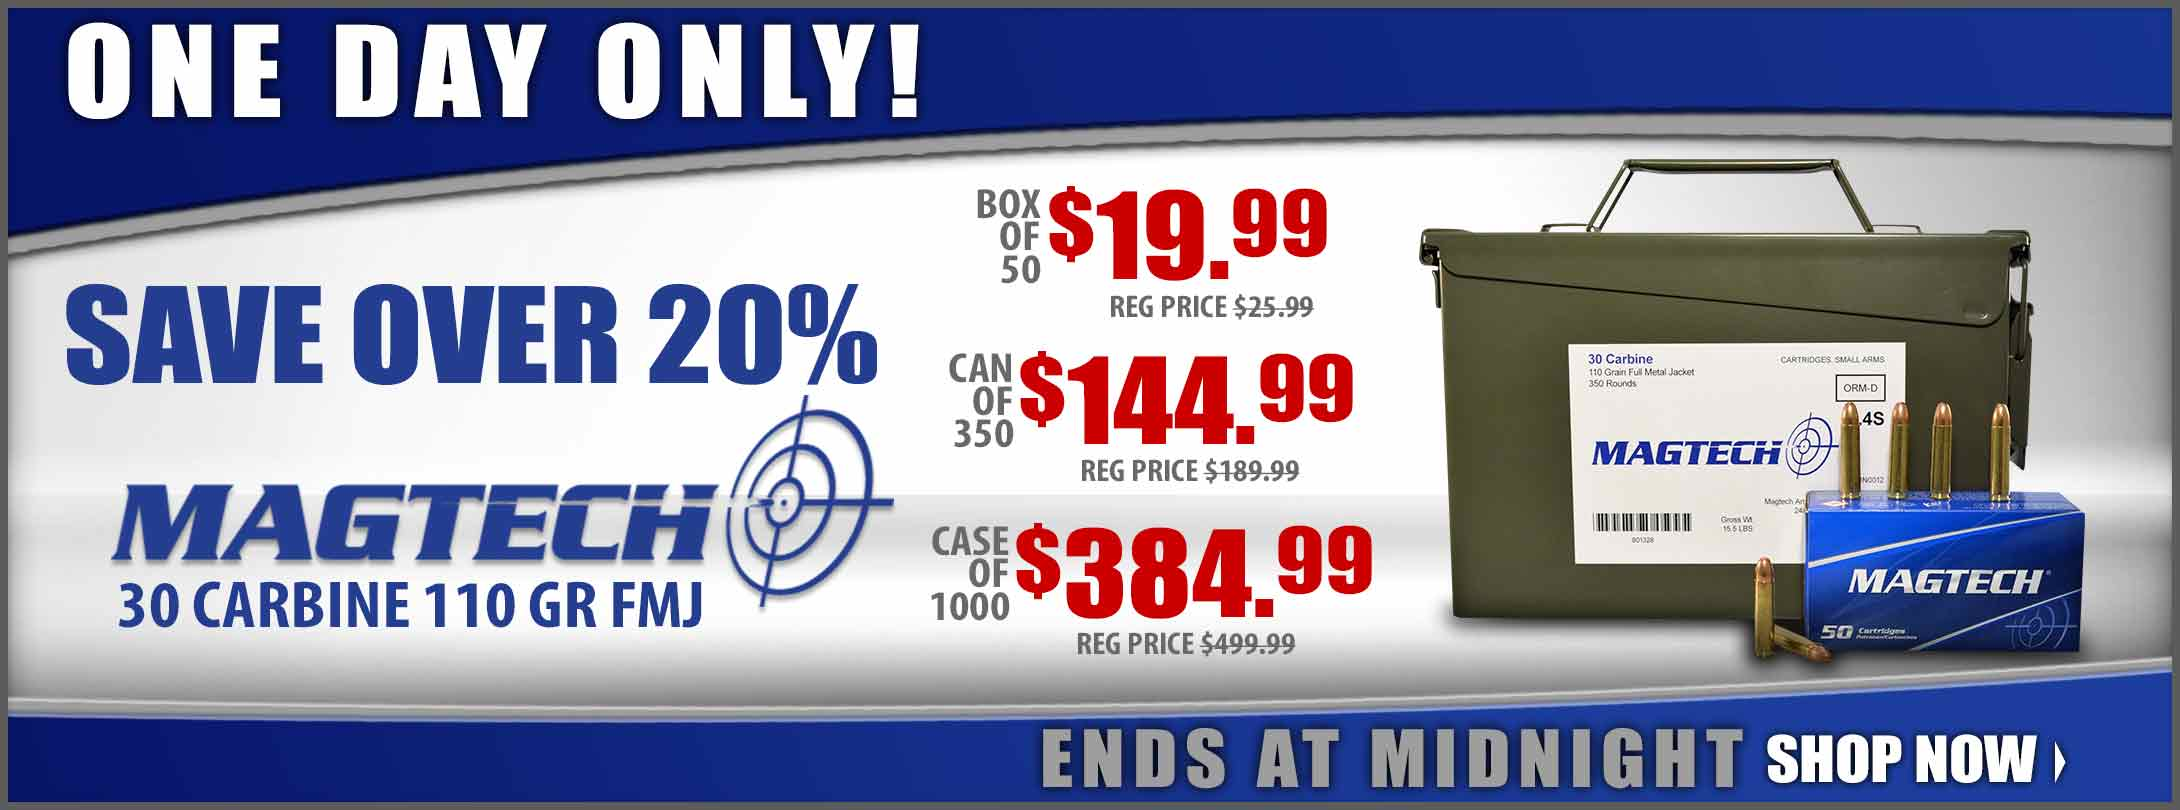 Save on Magtech 30 Carbine Ammo!